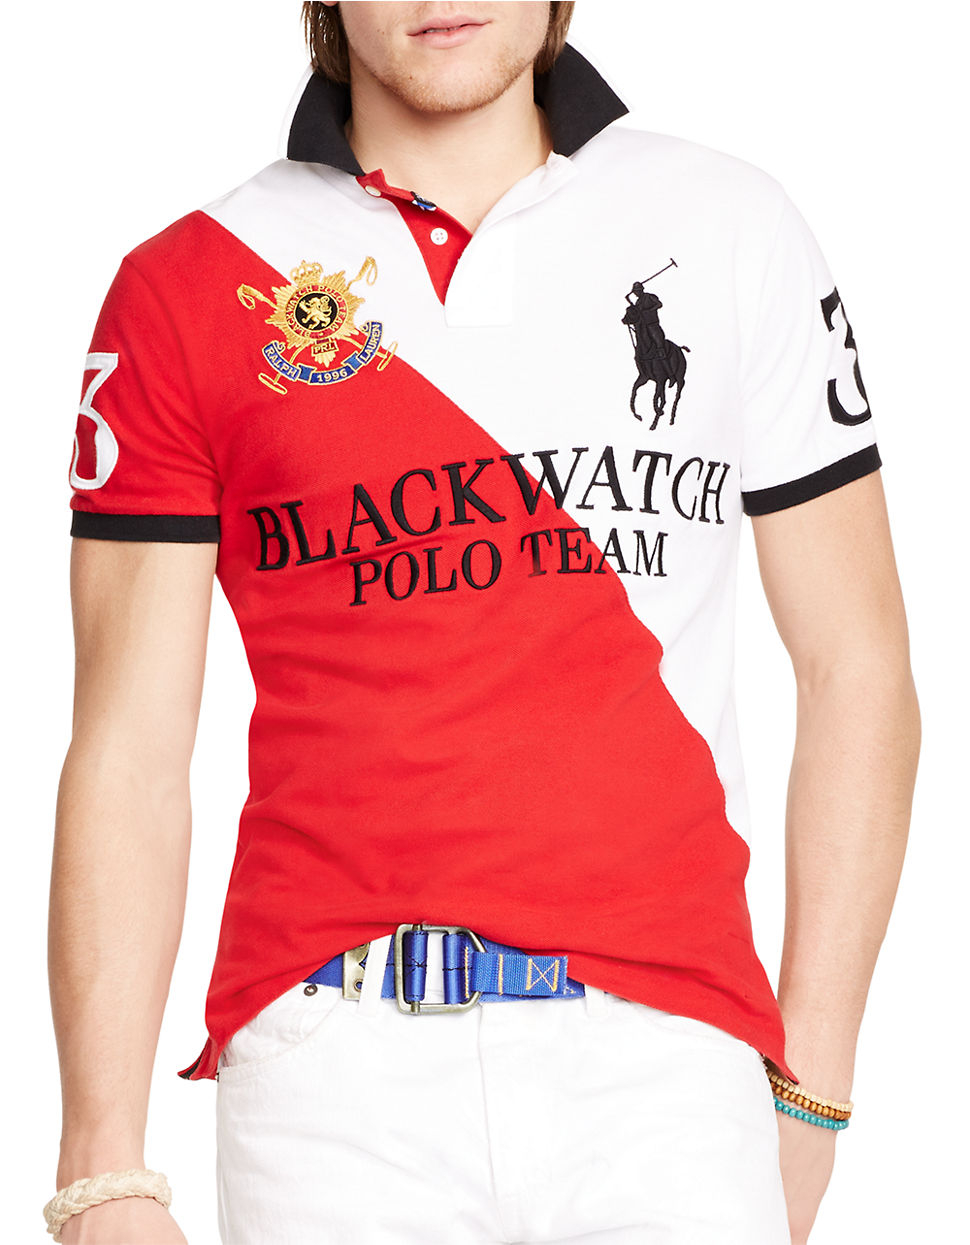 Polo Ralph Lauren Custom-Fit Long Sleeve Black Watch Polo